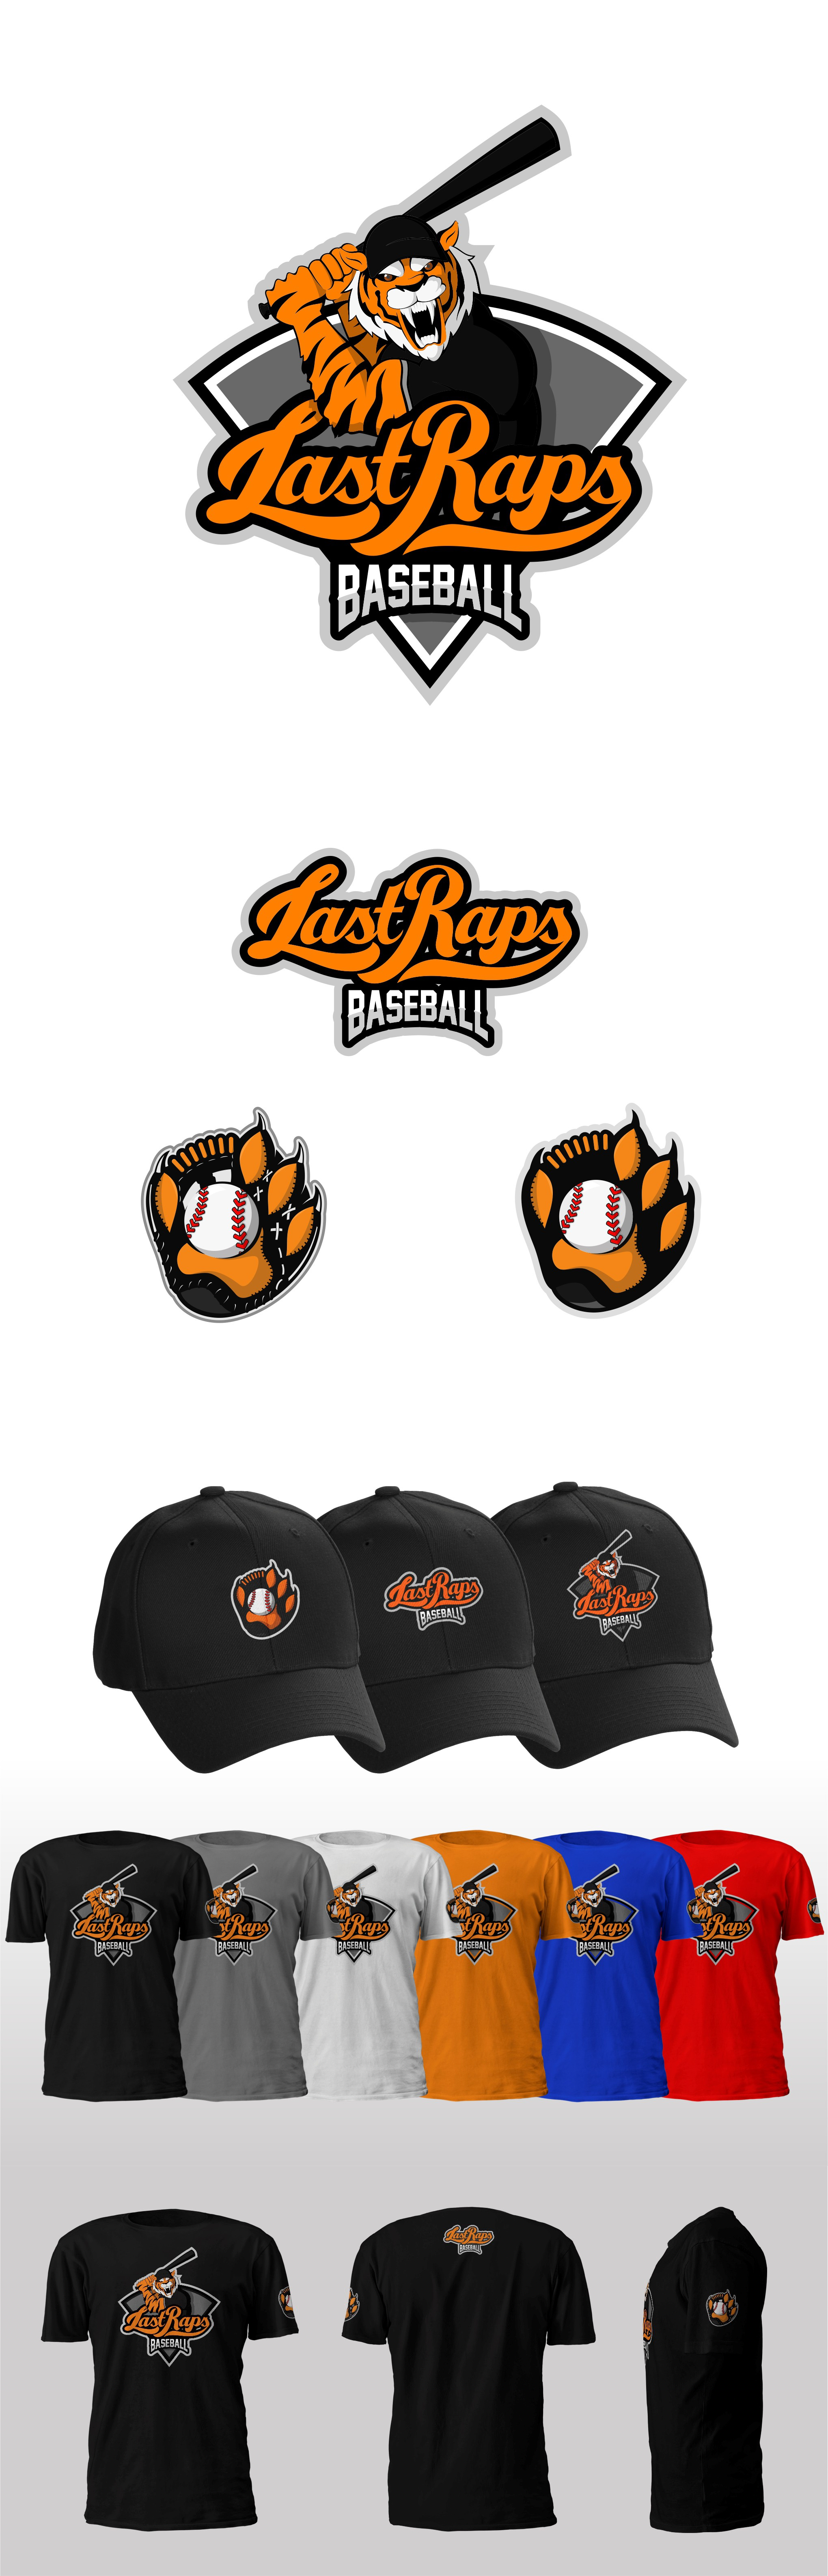 Looking for a baseball logo that will bring our mascot to life!